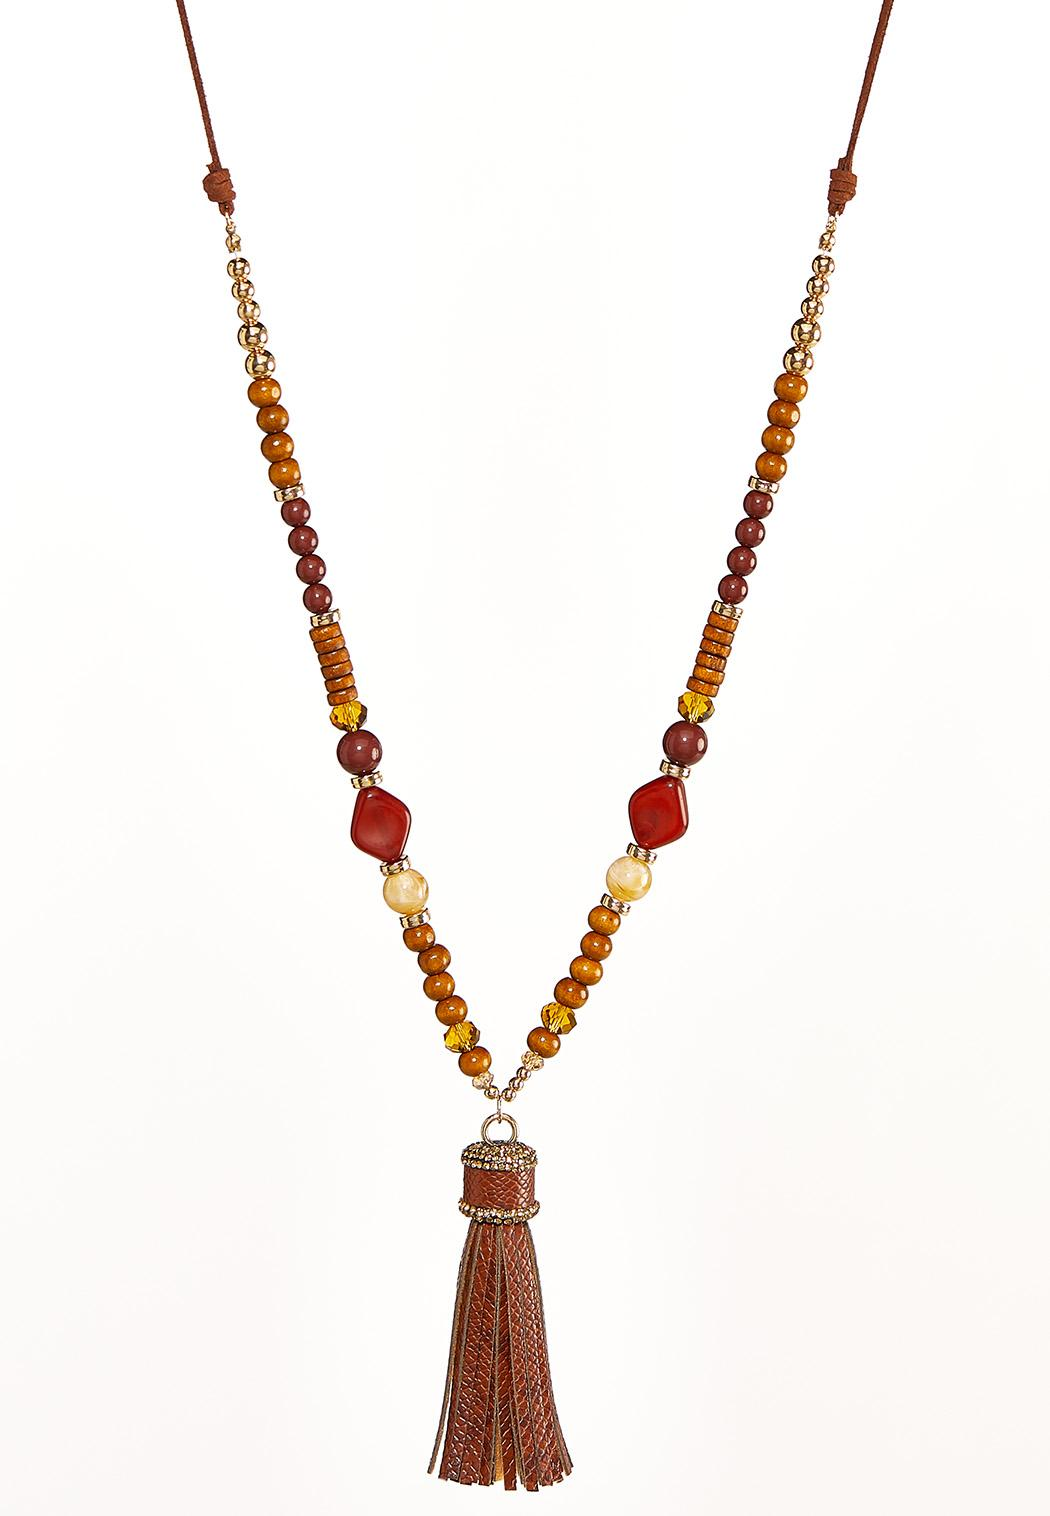 Tasseled Wooden Bead Necklace